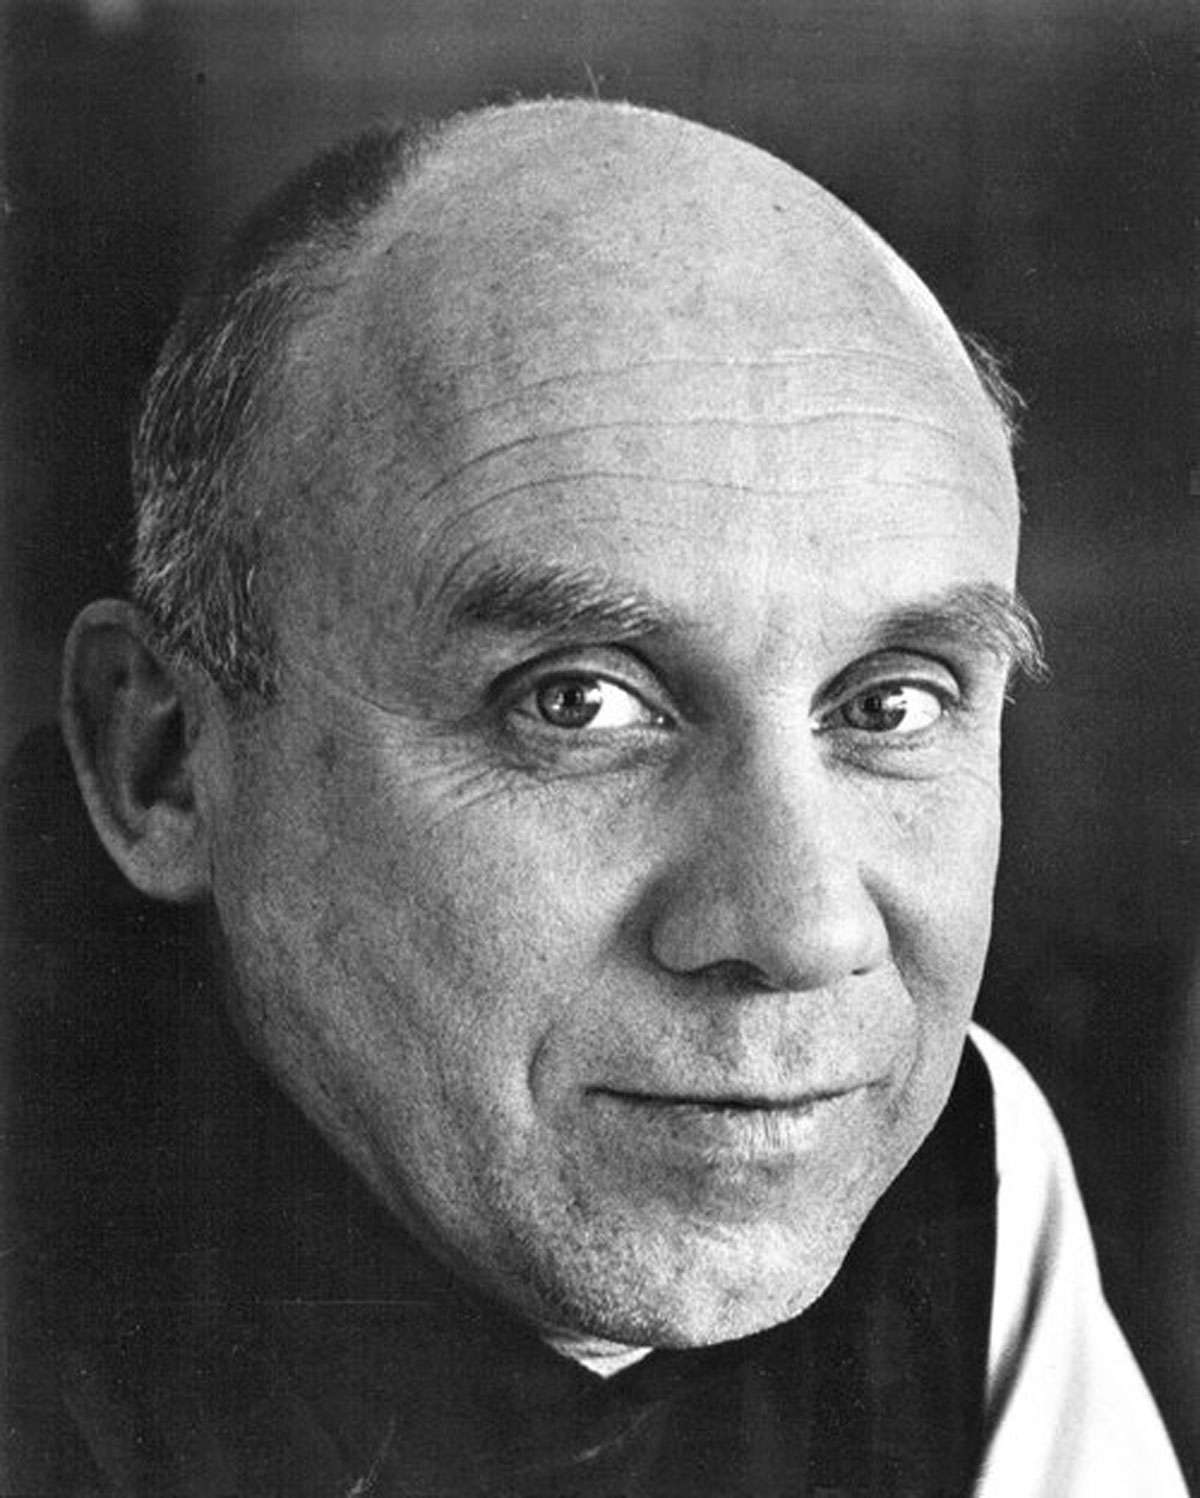 Thomas Merton - portrait photo by John Howard Griffin - Photo:  Creative Commons